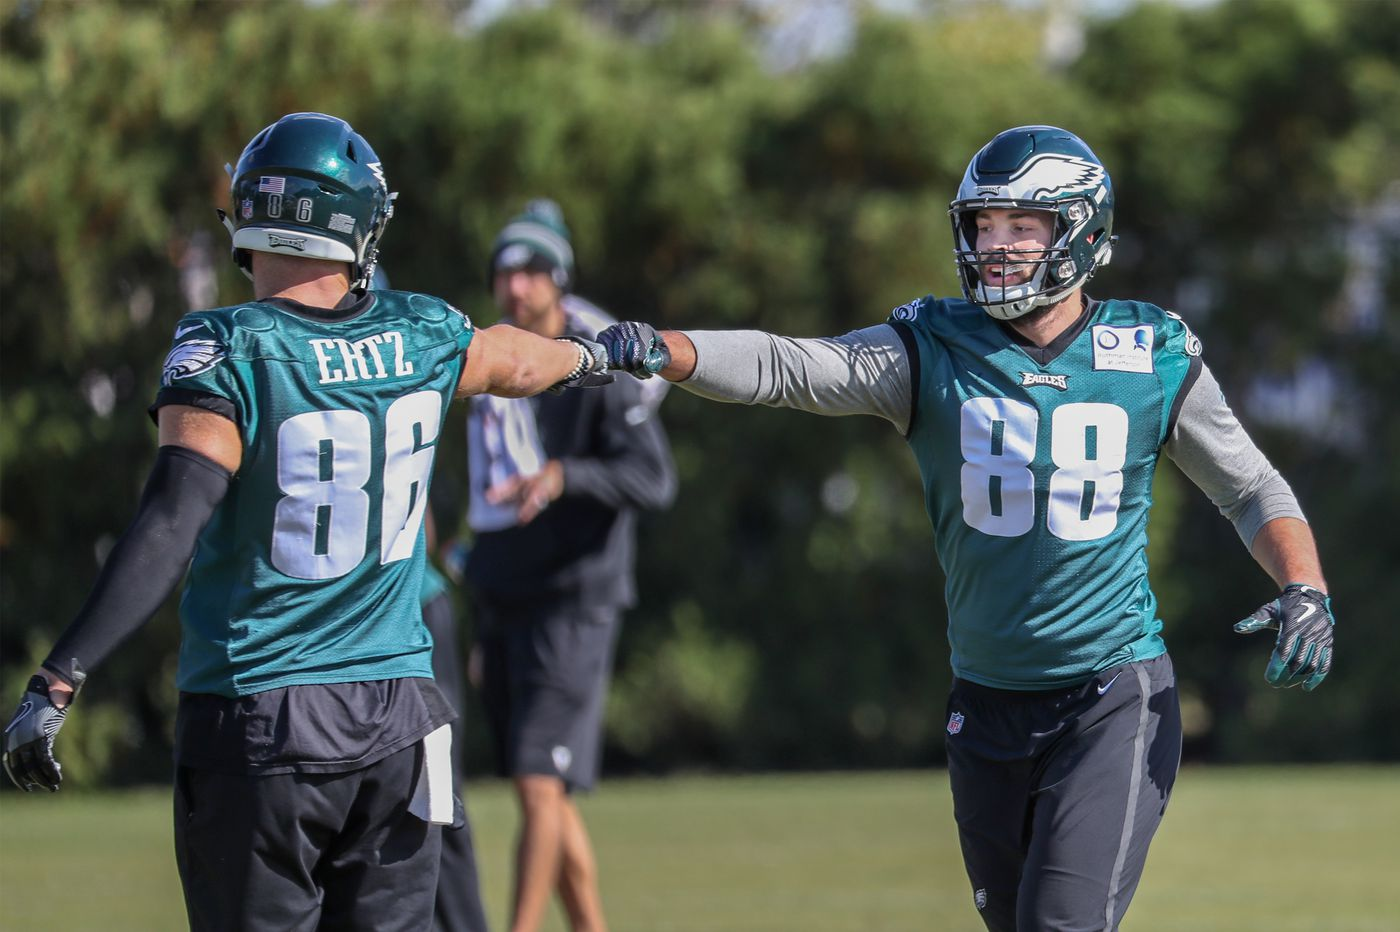 Eagles need to make a commitment to two-tight end sets with Zach Ertz and Dallas Goedert